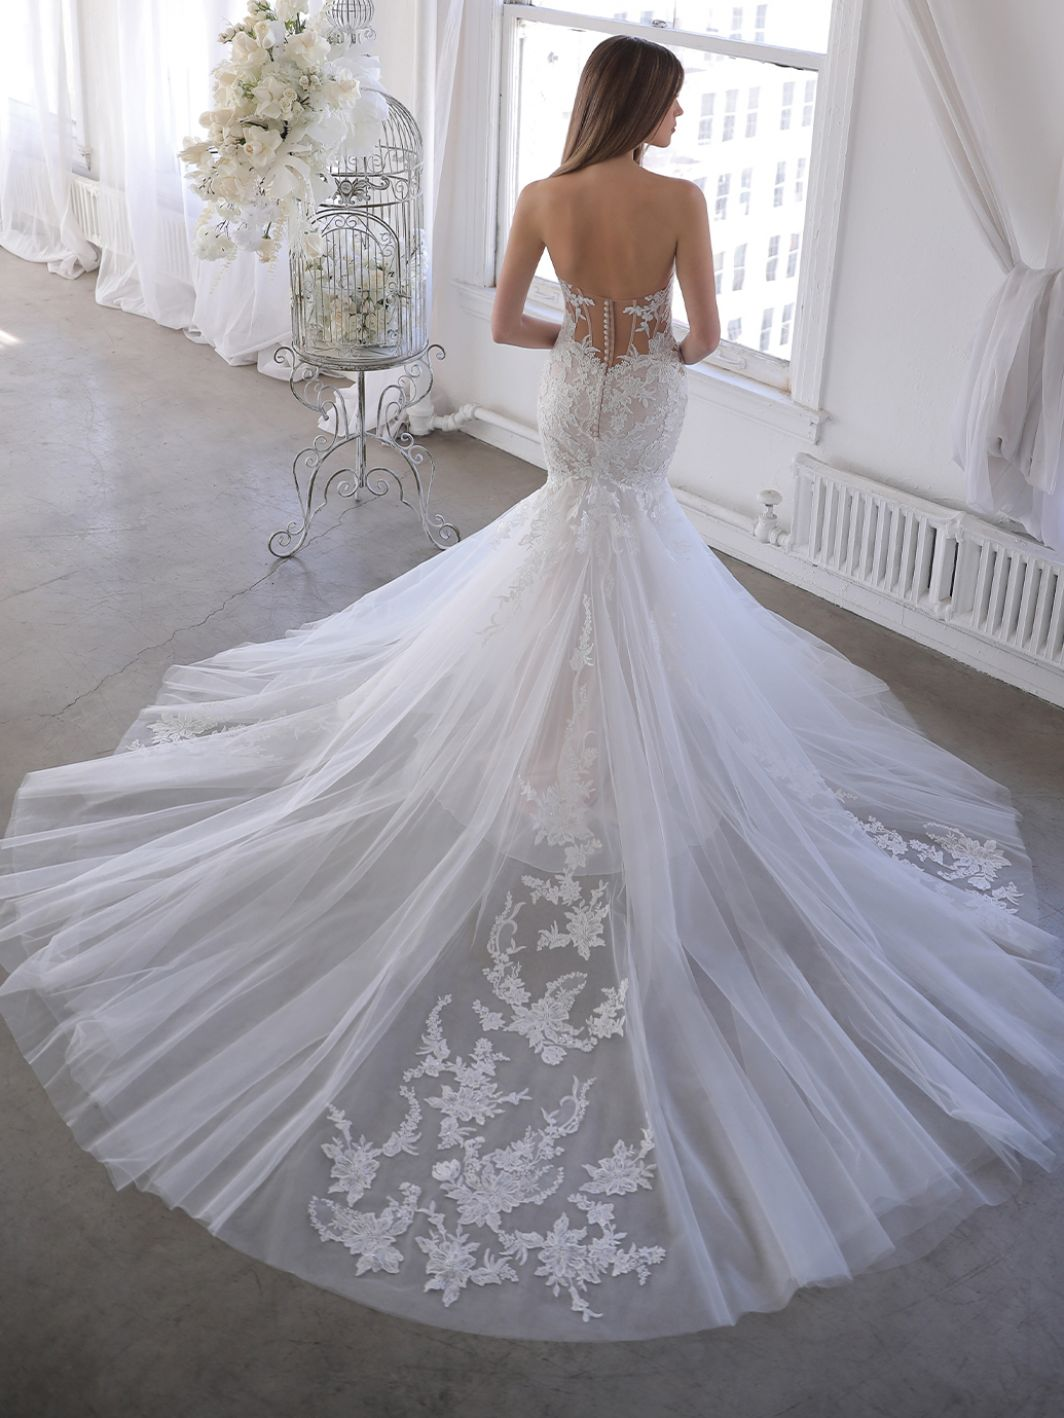 Blue by Enzoani Orchid Wedding Dresses, from the 2022 collection, available at Emily Bridalwear, Sheffield.